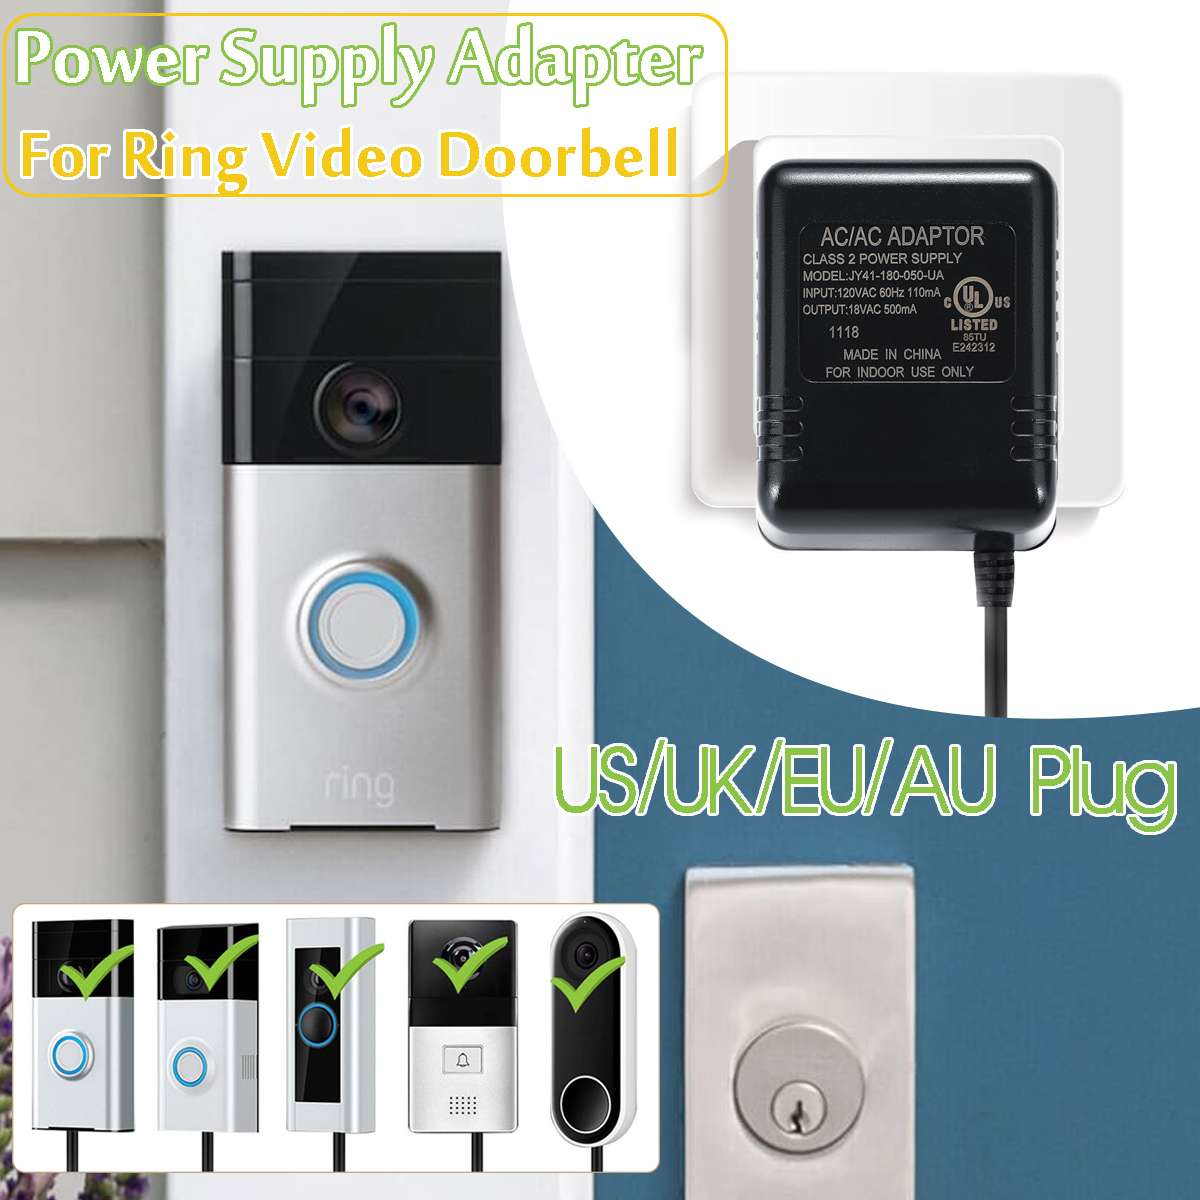 US/UK/EU/AU Plug 18V AC Transformer 110V-240V Wifi Doorbell Camera Power Adapter for IP Video Interc